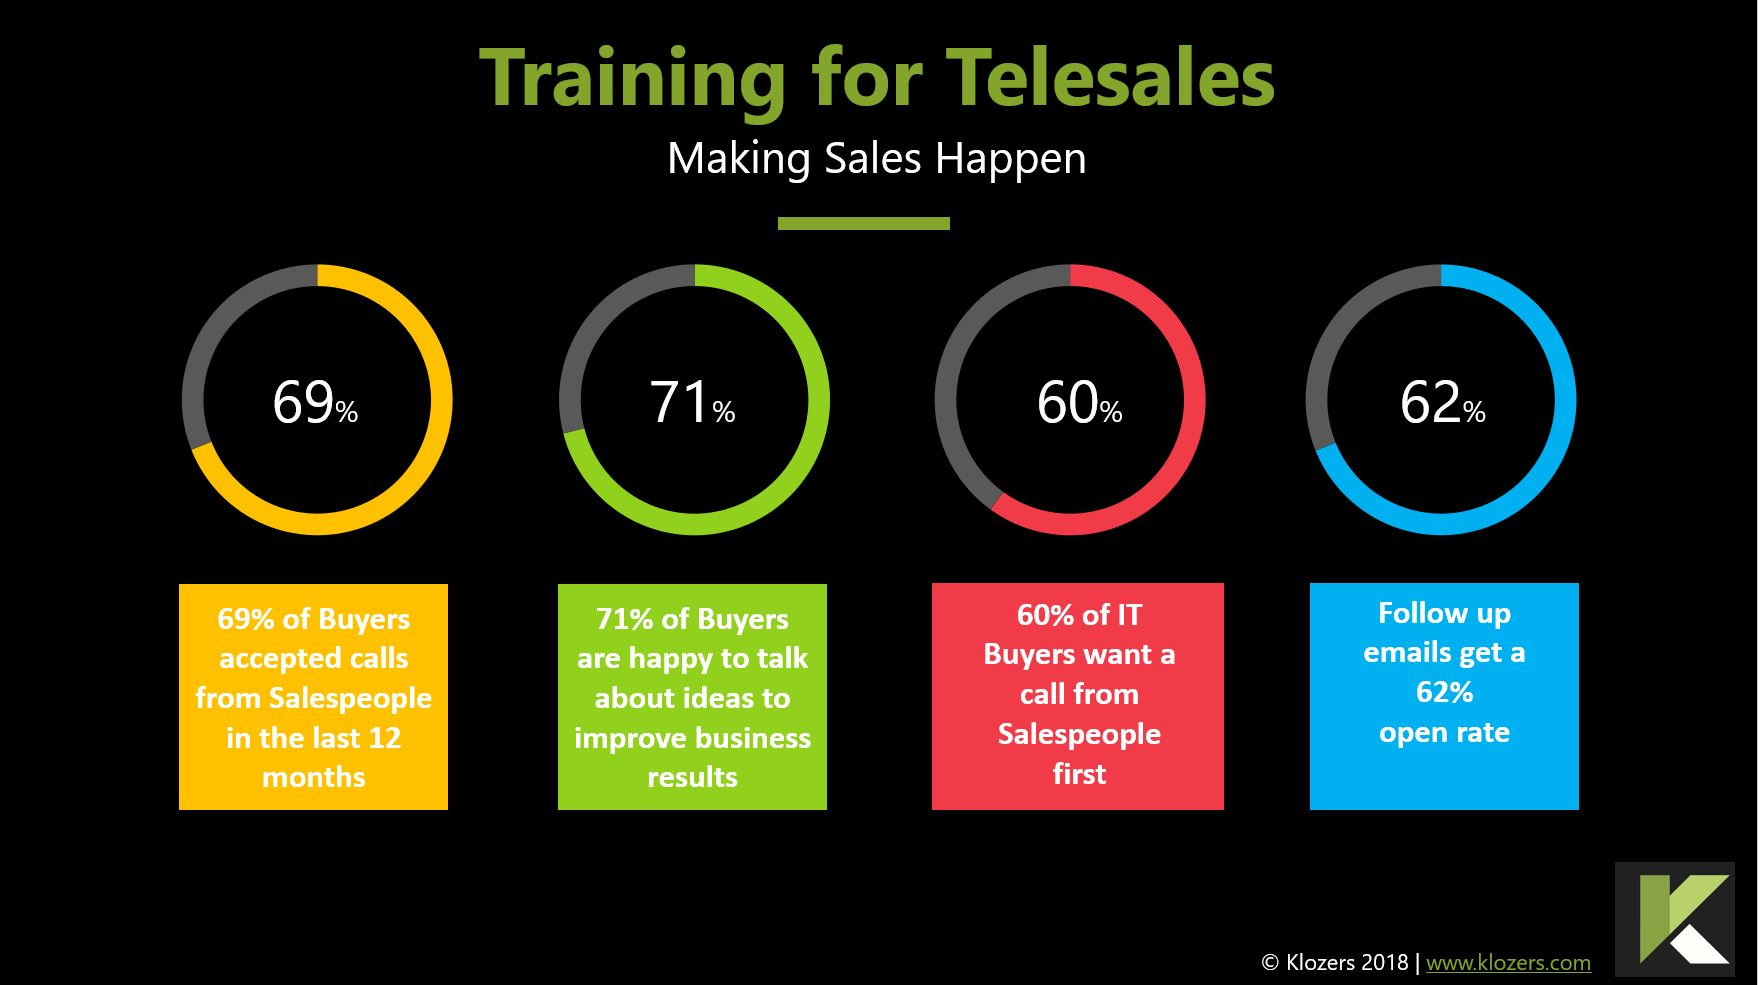 Training for Telesales